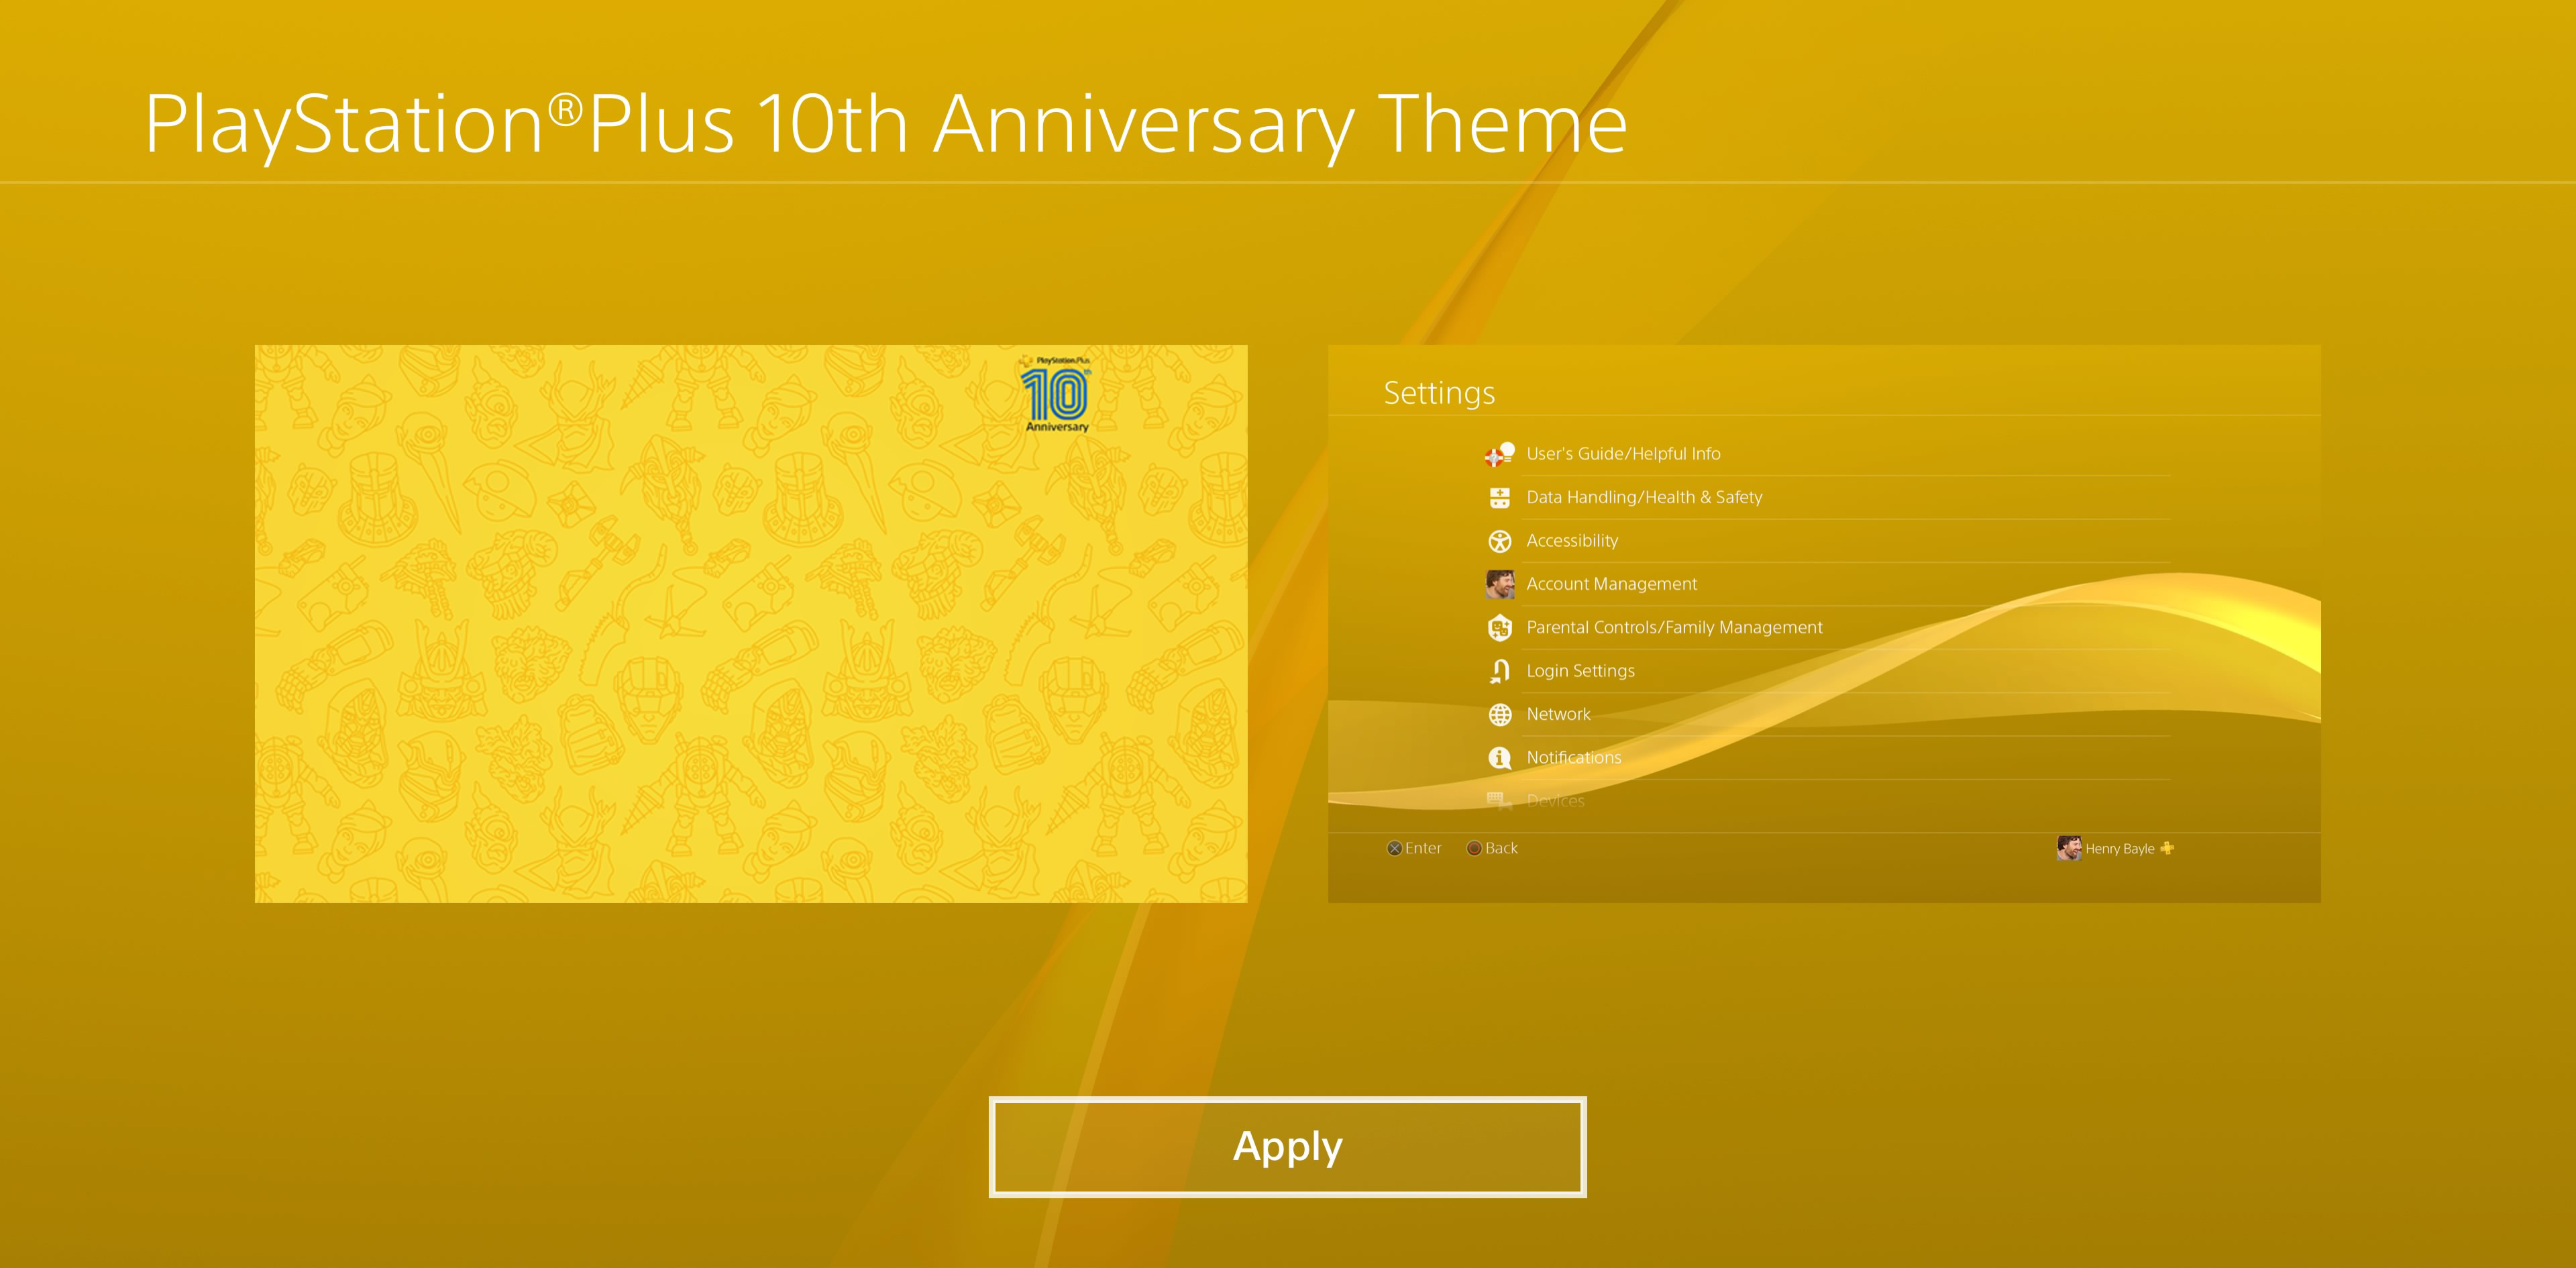 There's a free PS4 theme for the 10th anniversary of PlayStation Plus screenshot